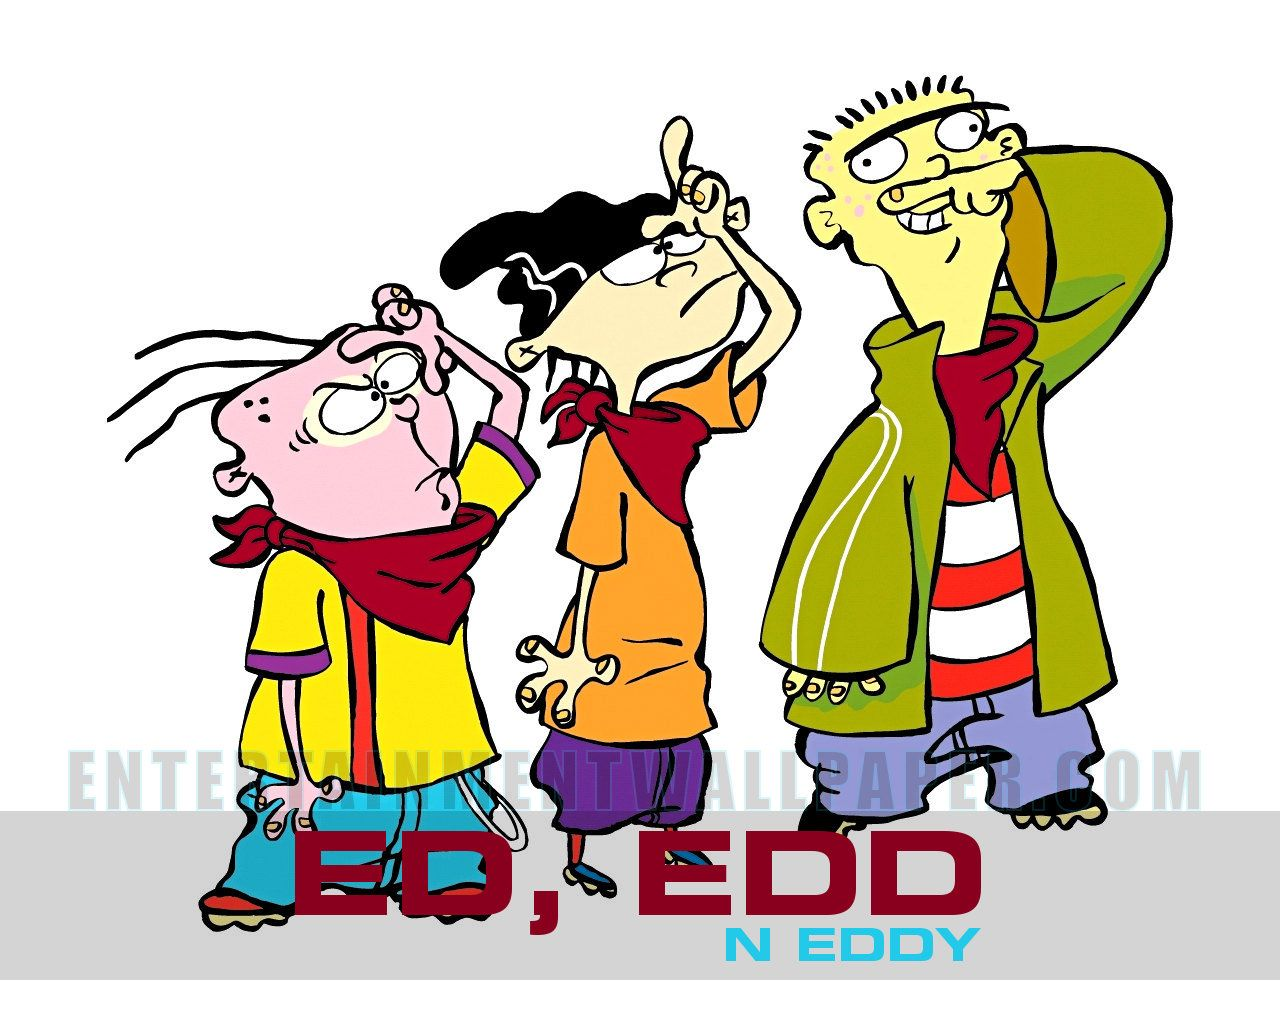 Ed Edd N Eddy Wallpaper Google Search Edd Ed Edd N Eddy Cartoon